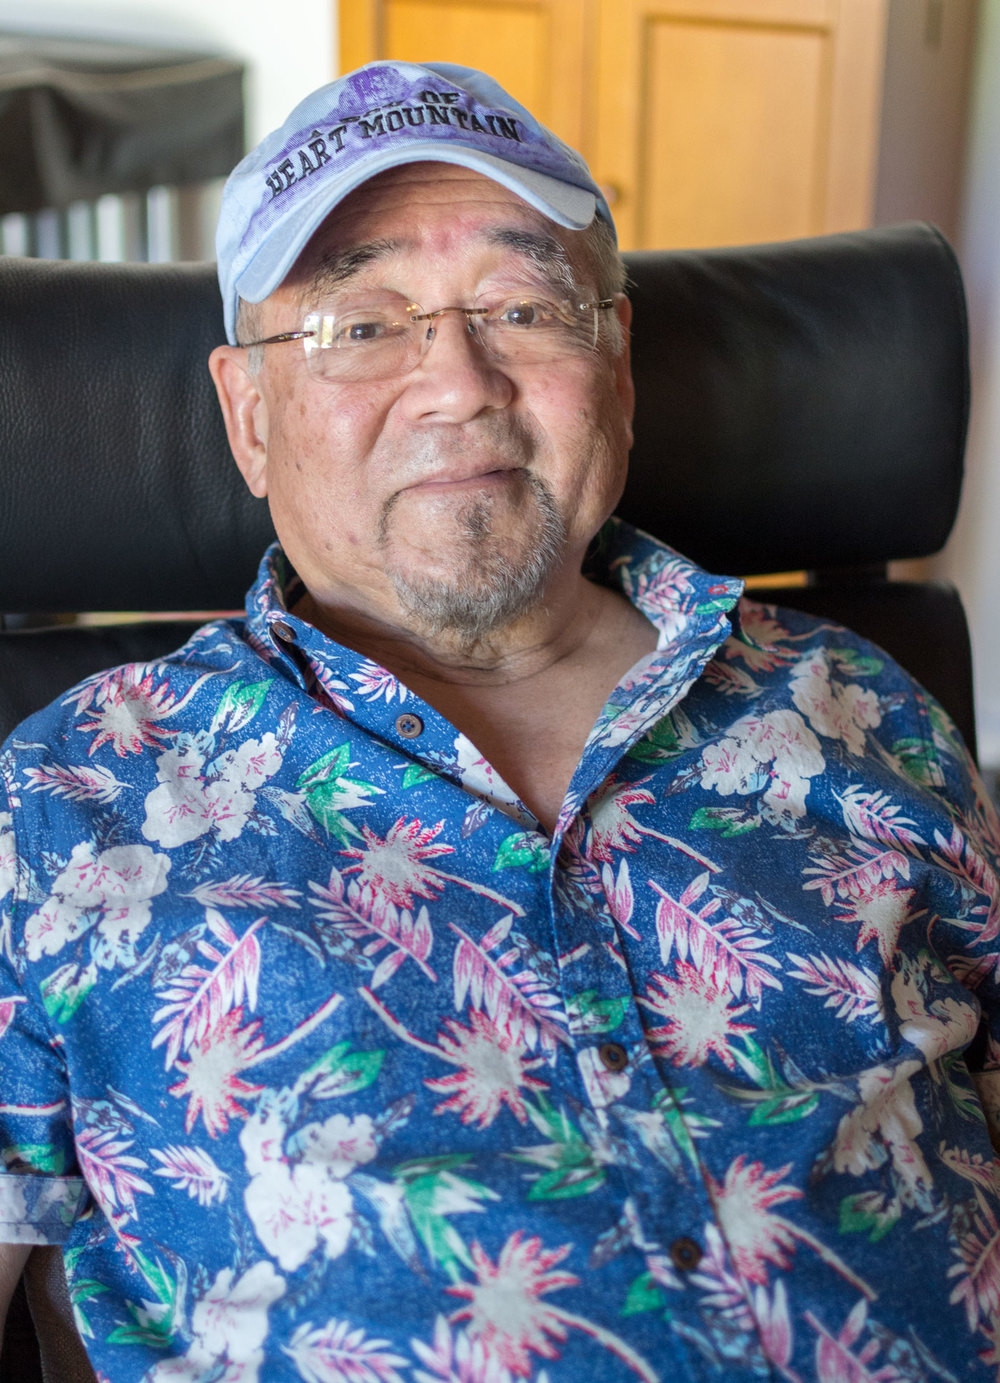 Willie Katsutoshi Ito Jr. - born July 7, 1934